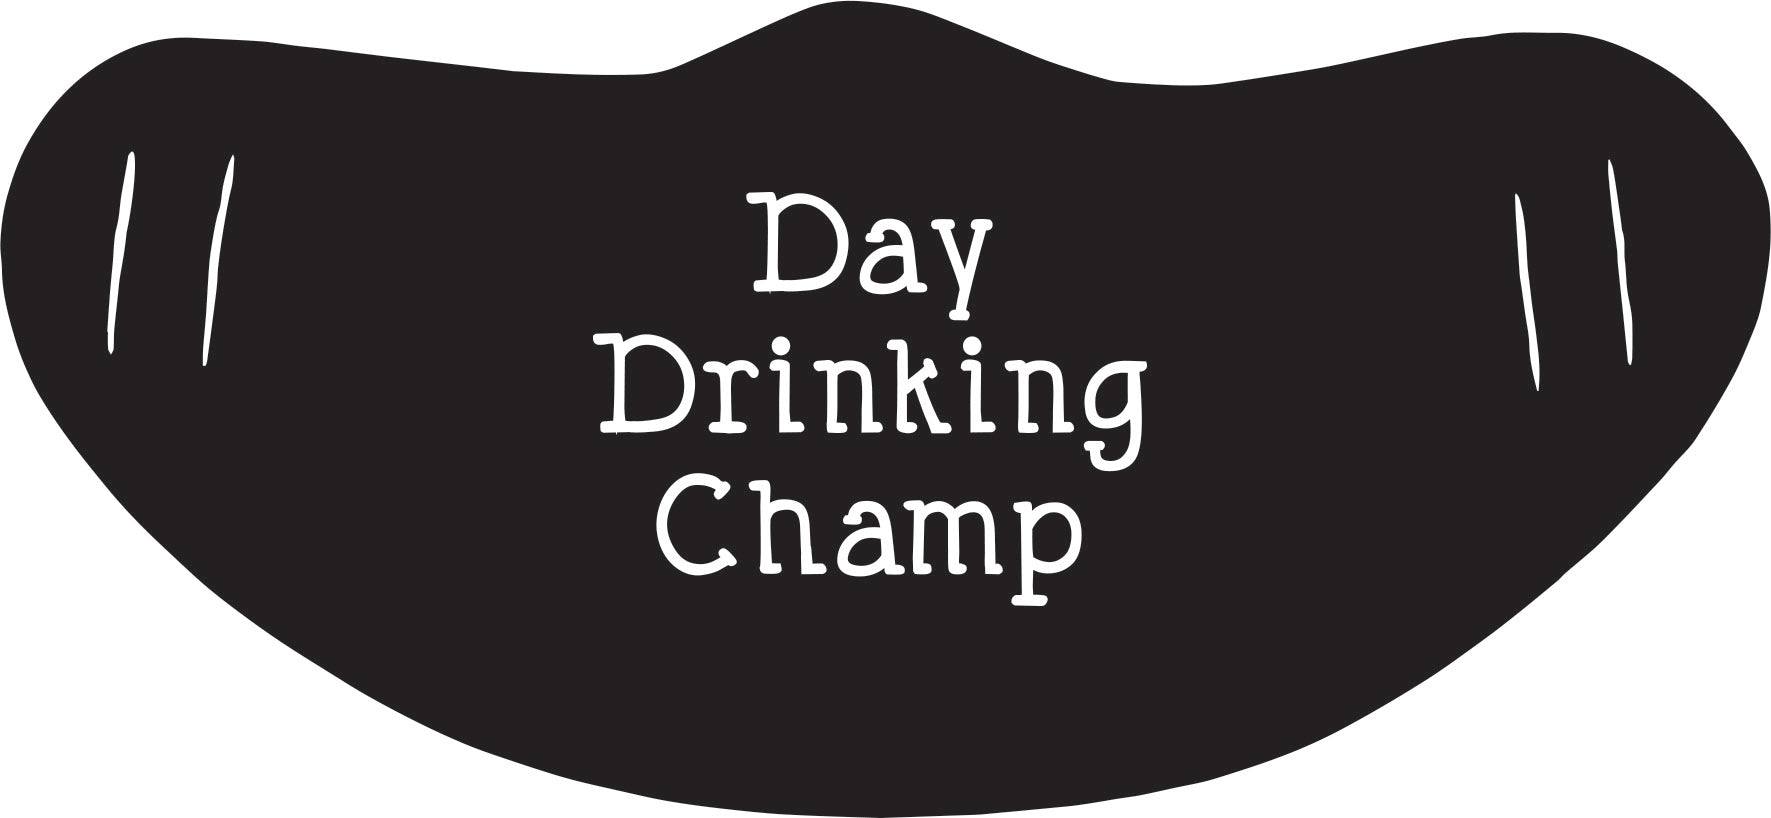 day drinking champ